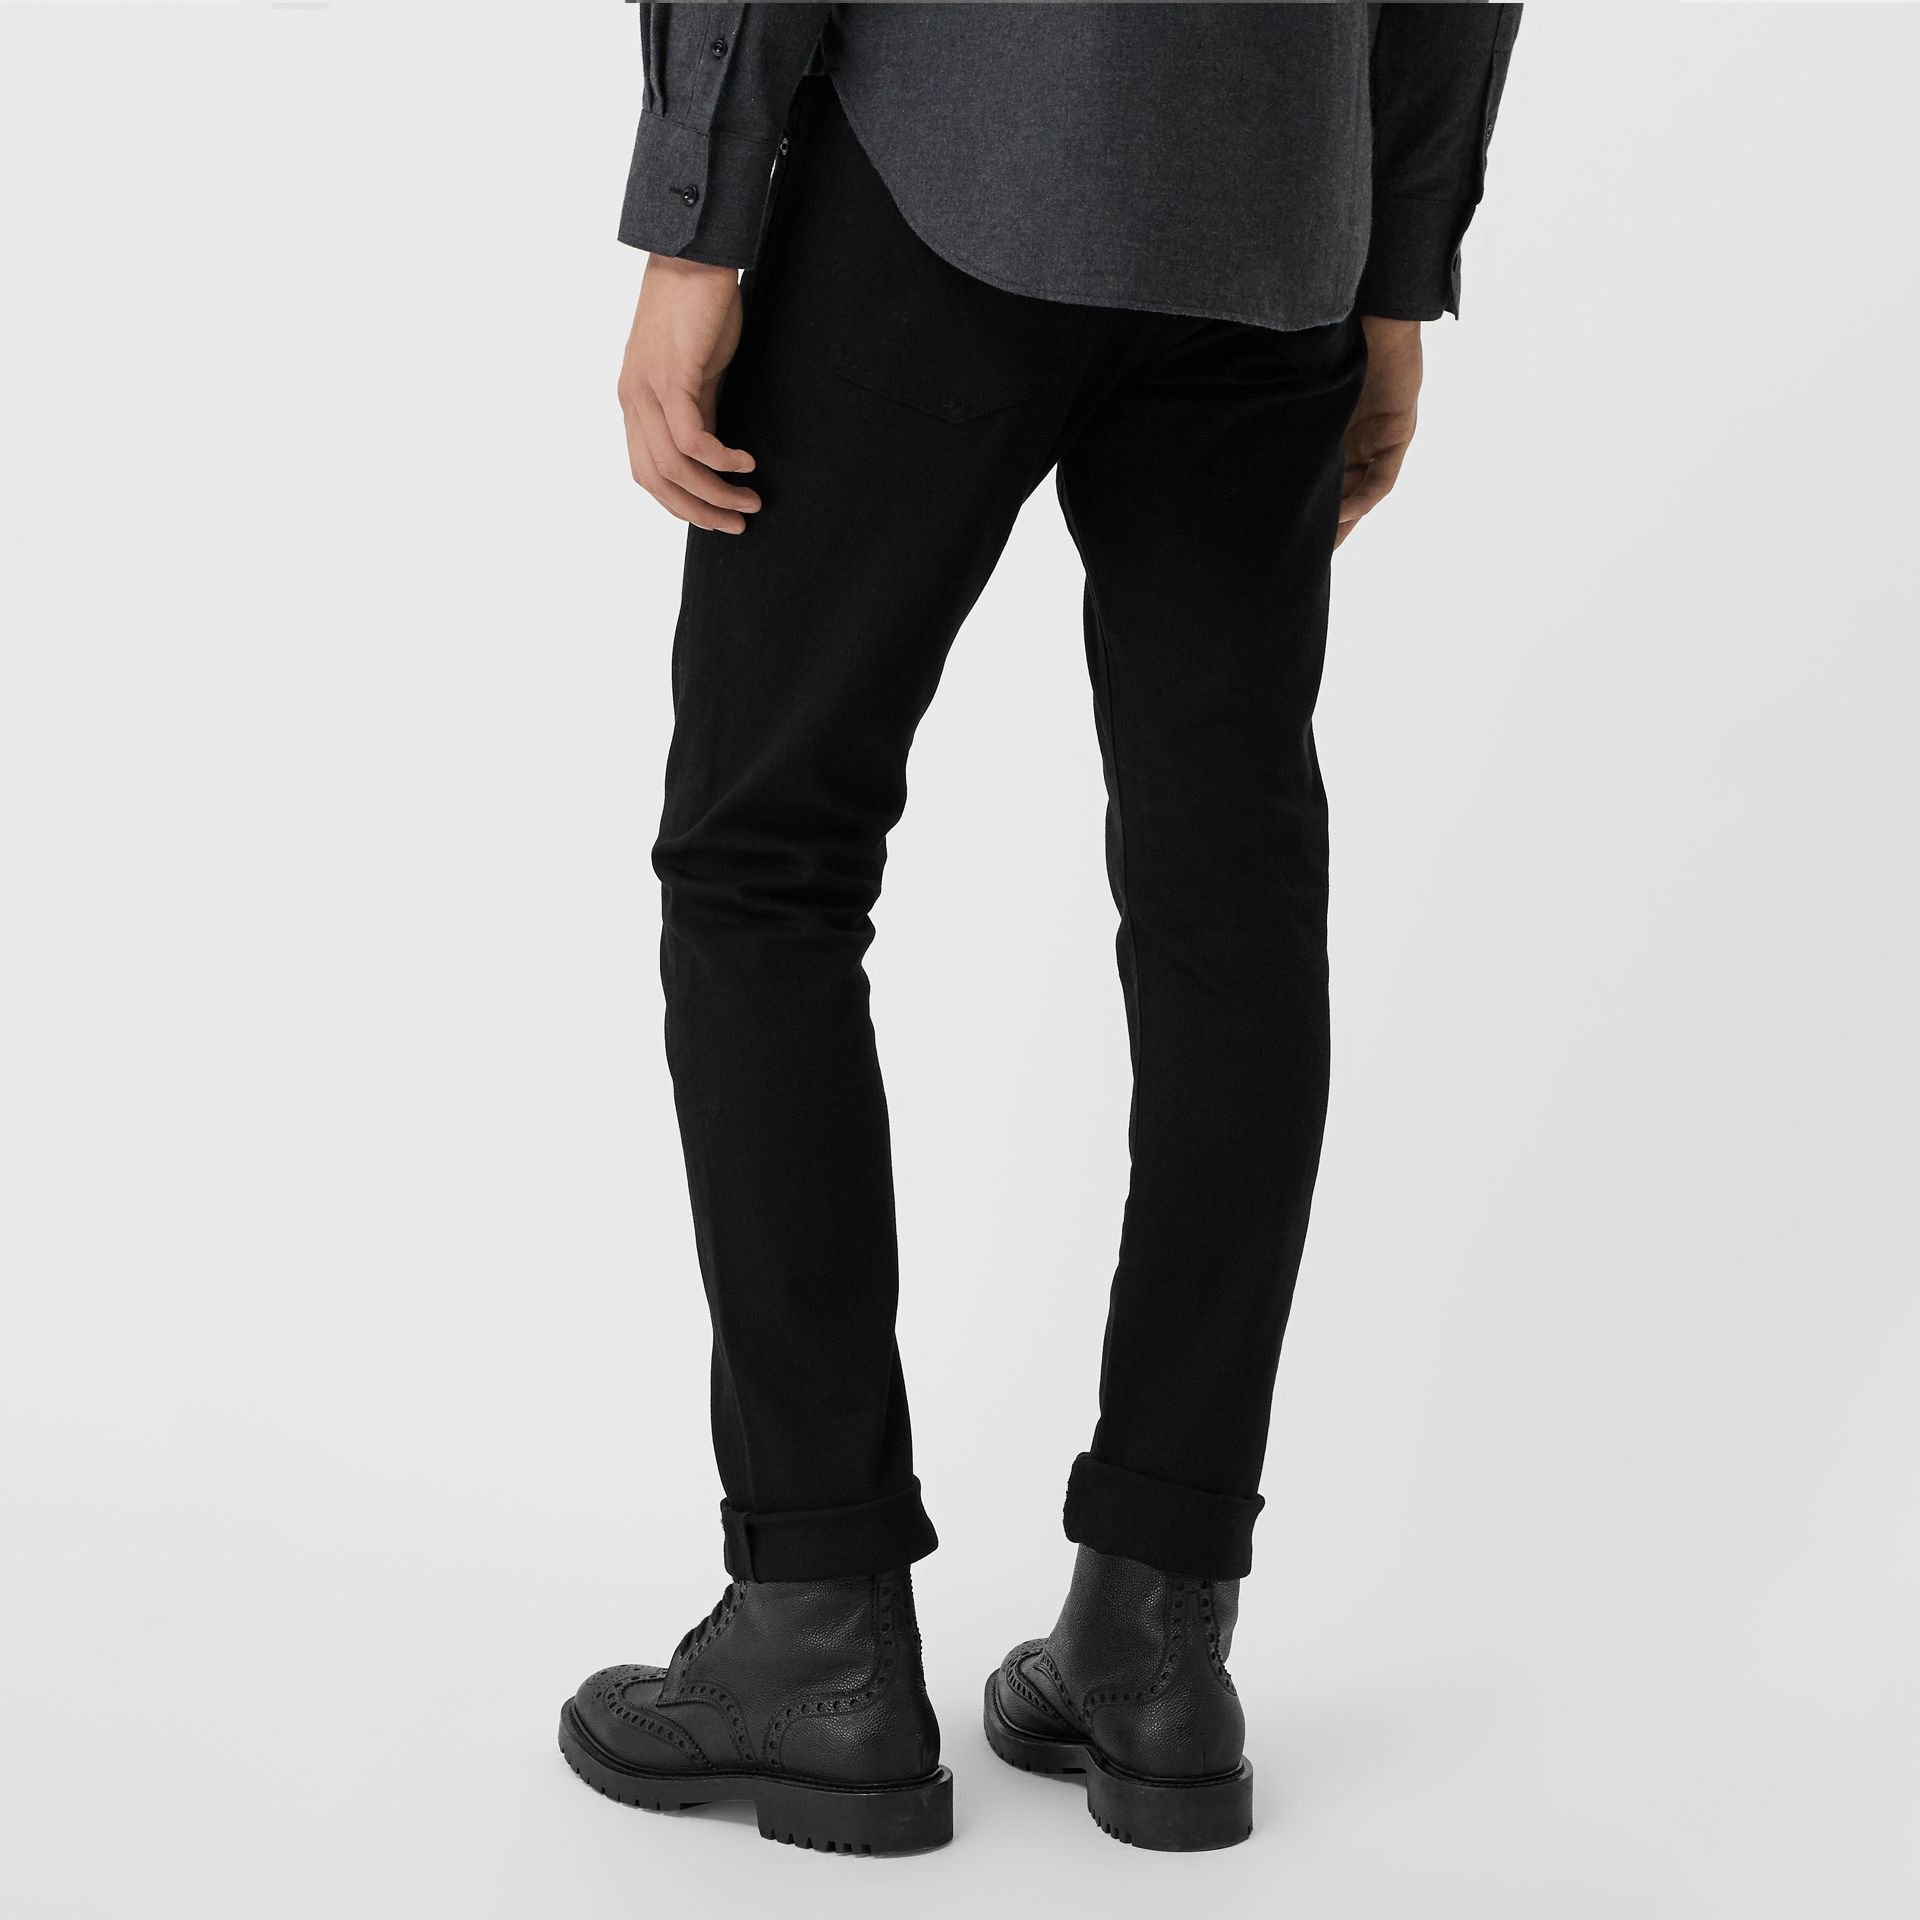 Jean denim extensible de coupe droite (Noir) - Homme | Burberry Canada - photo de la galerie 2